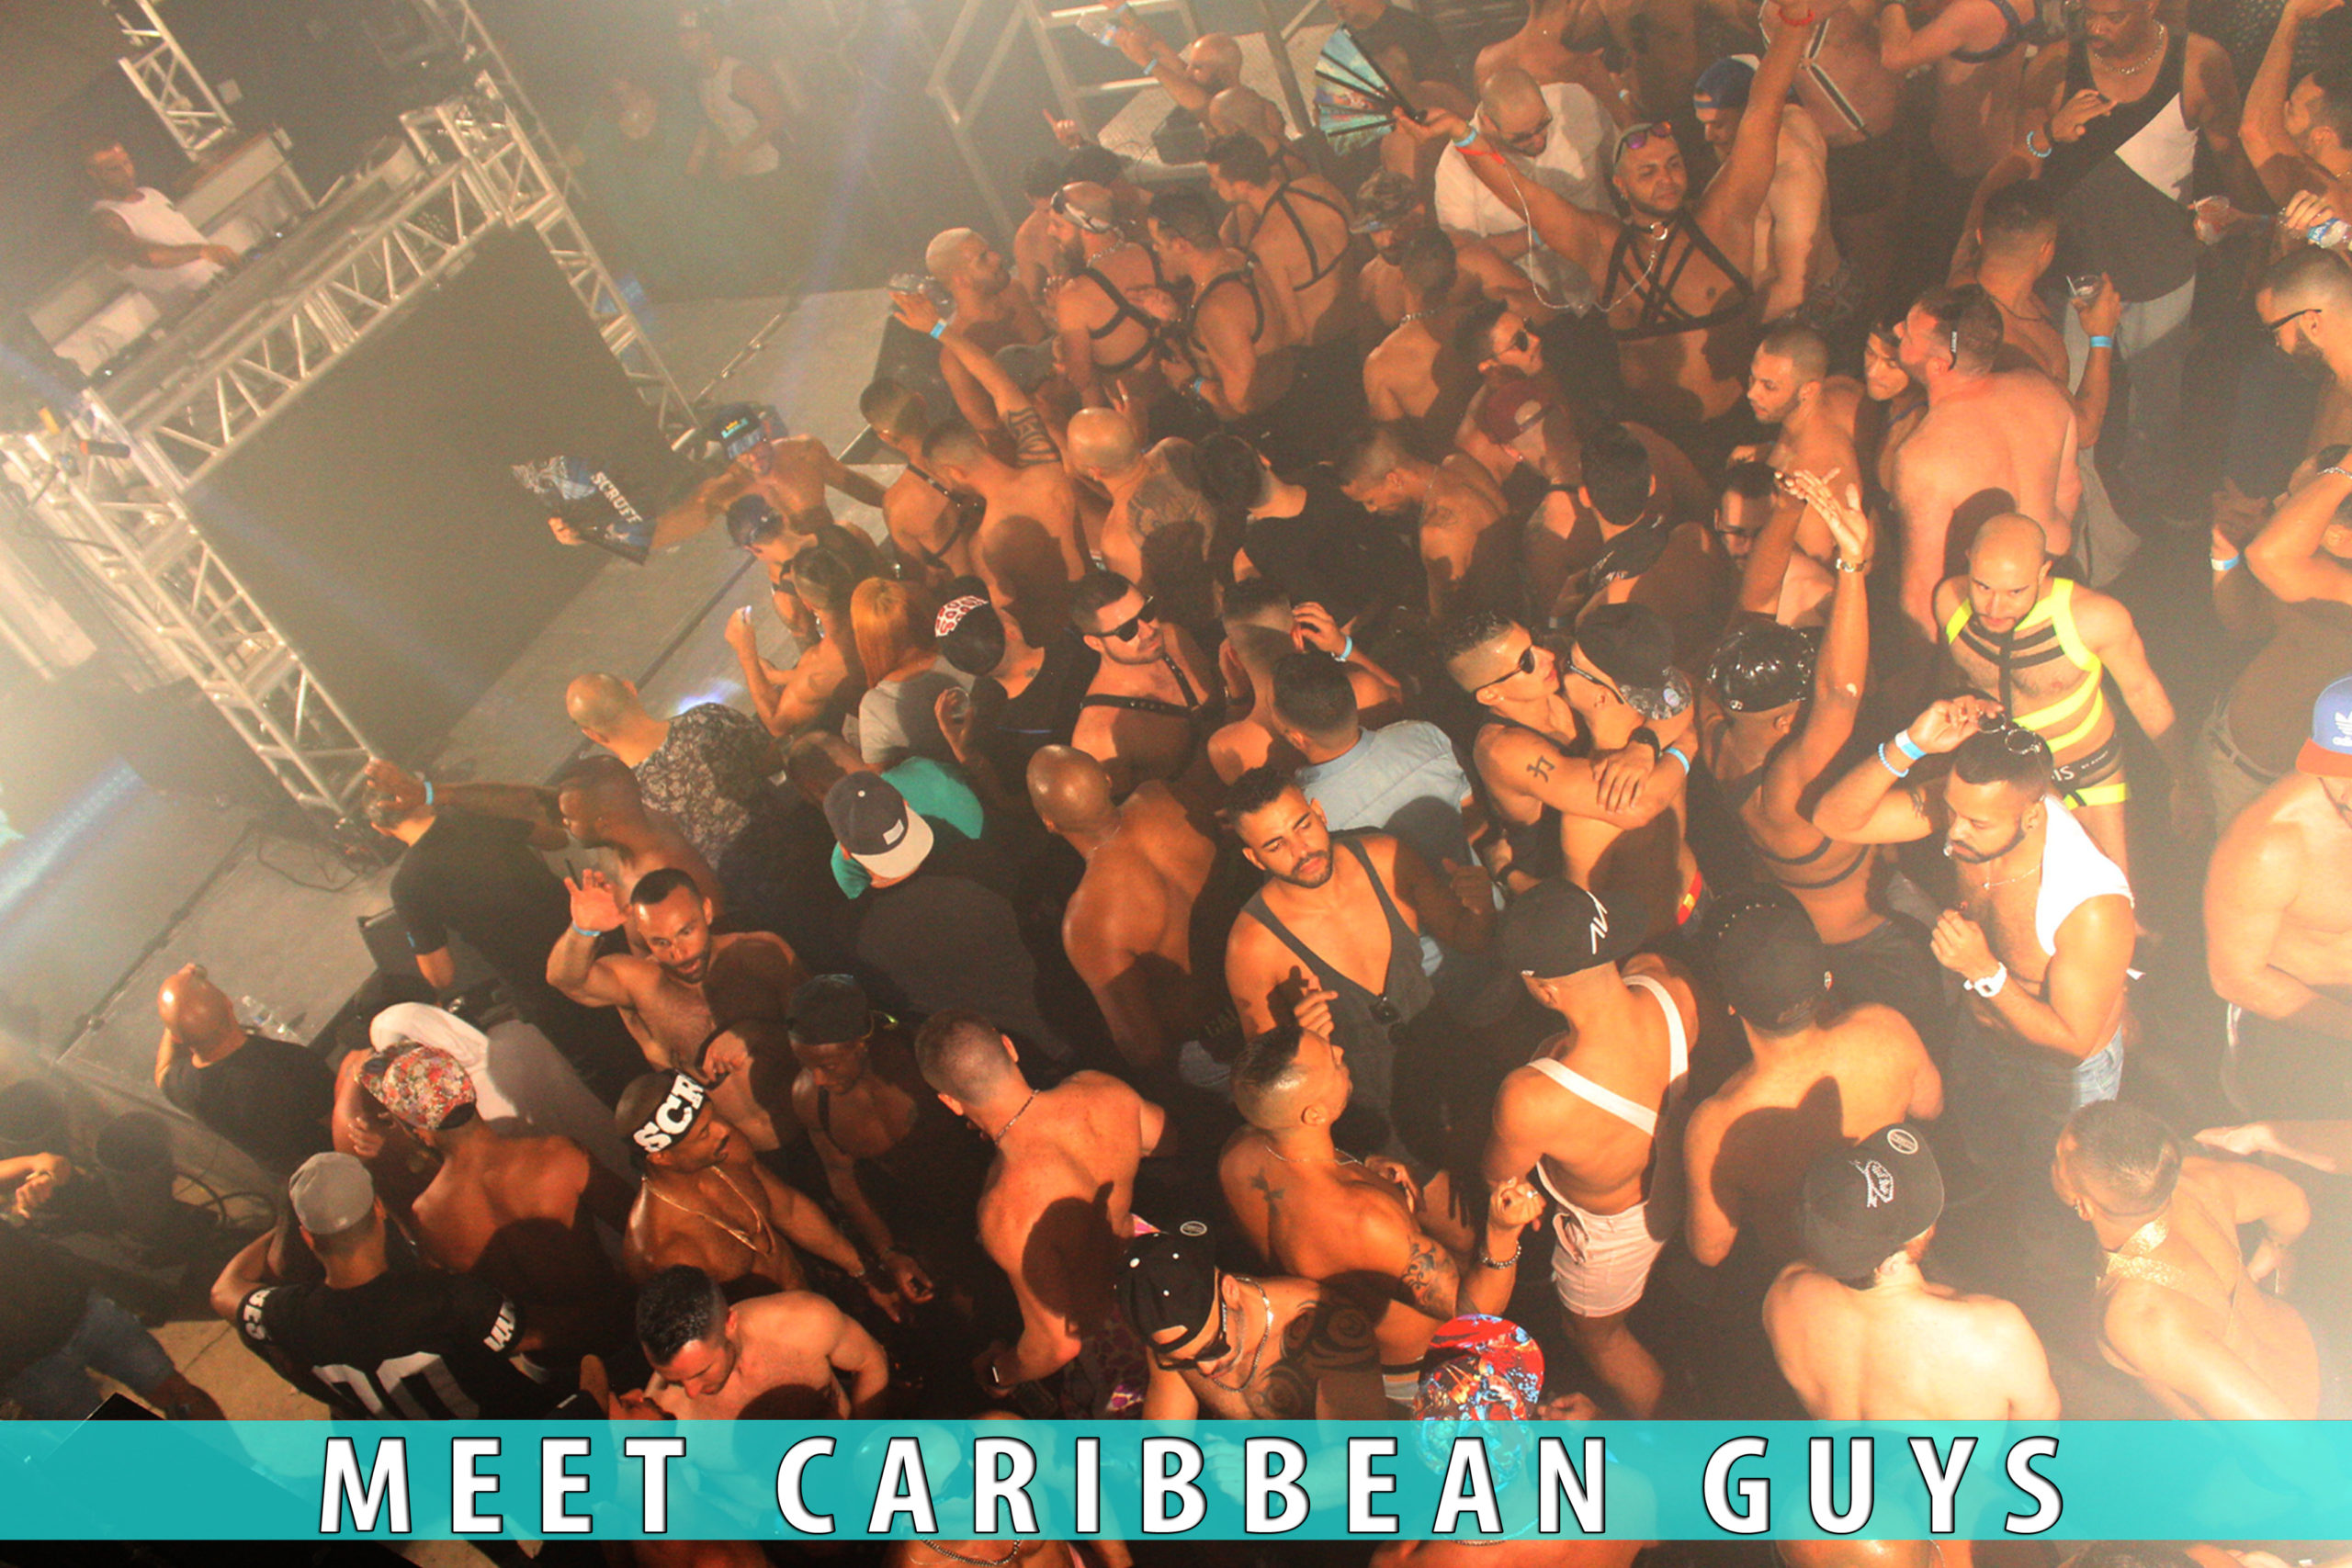 02. Meet Caribbean Guys